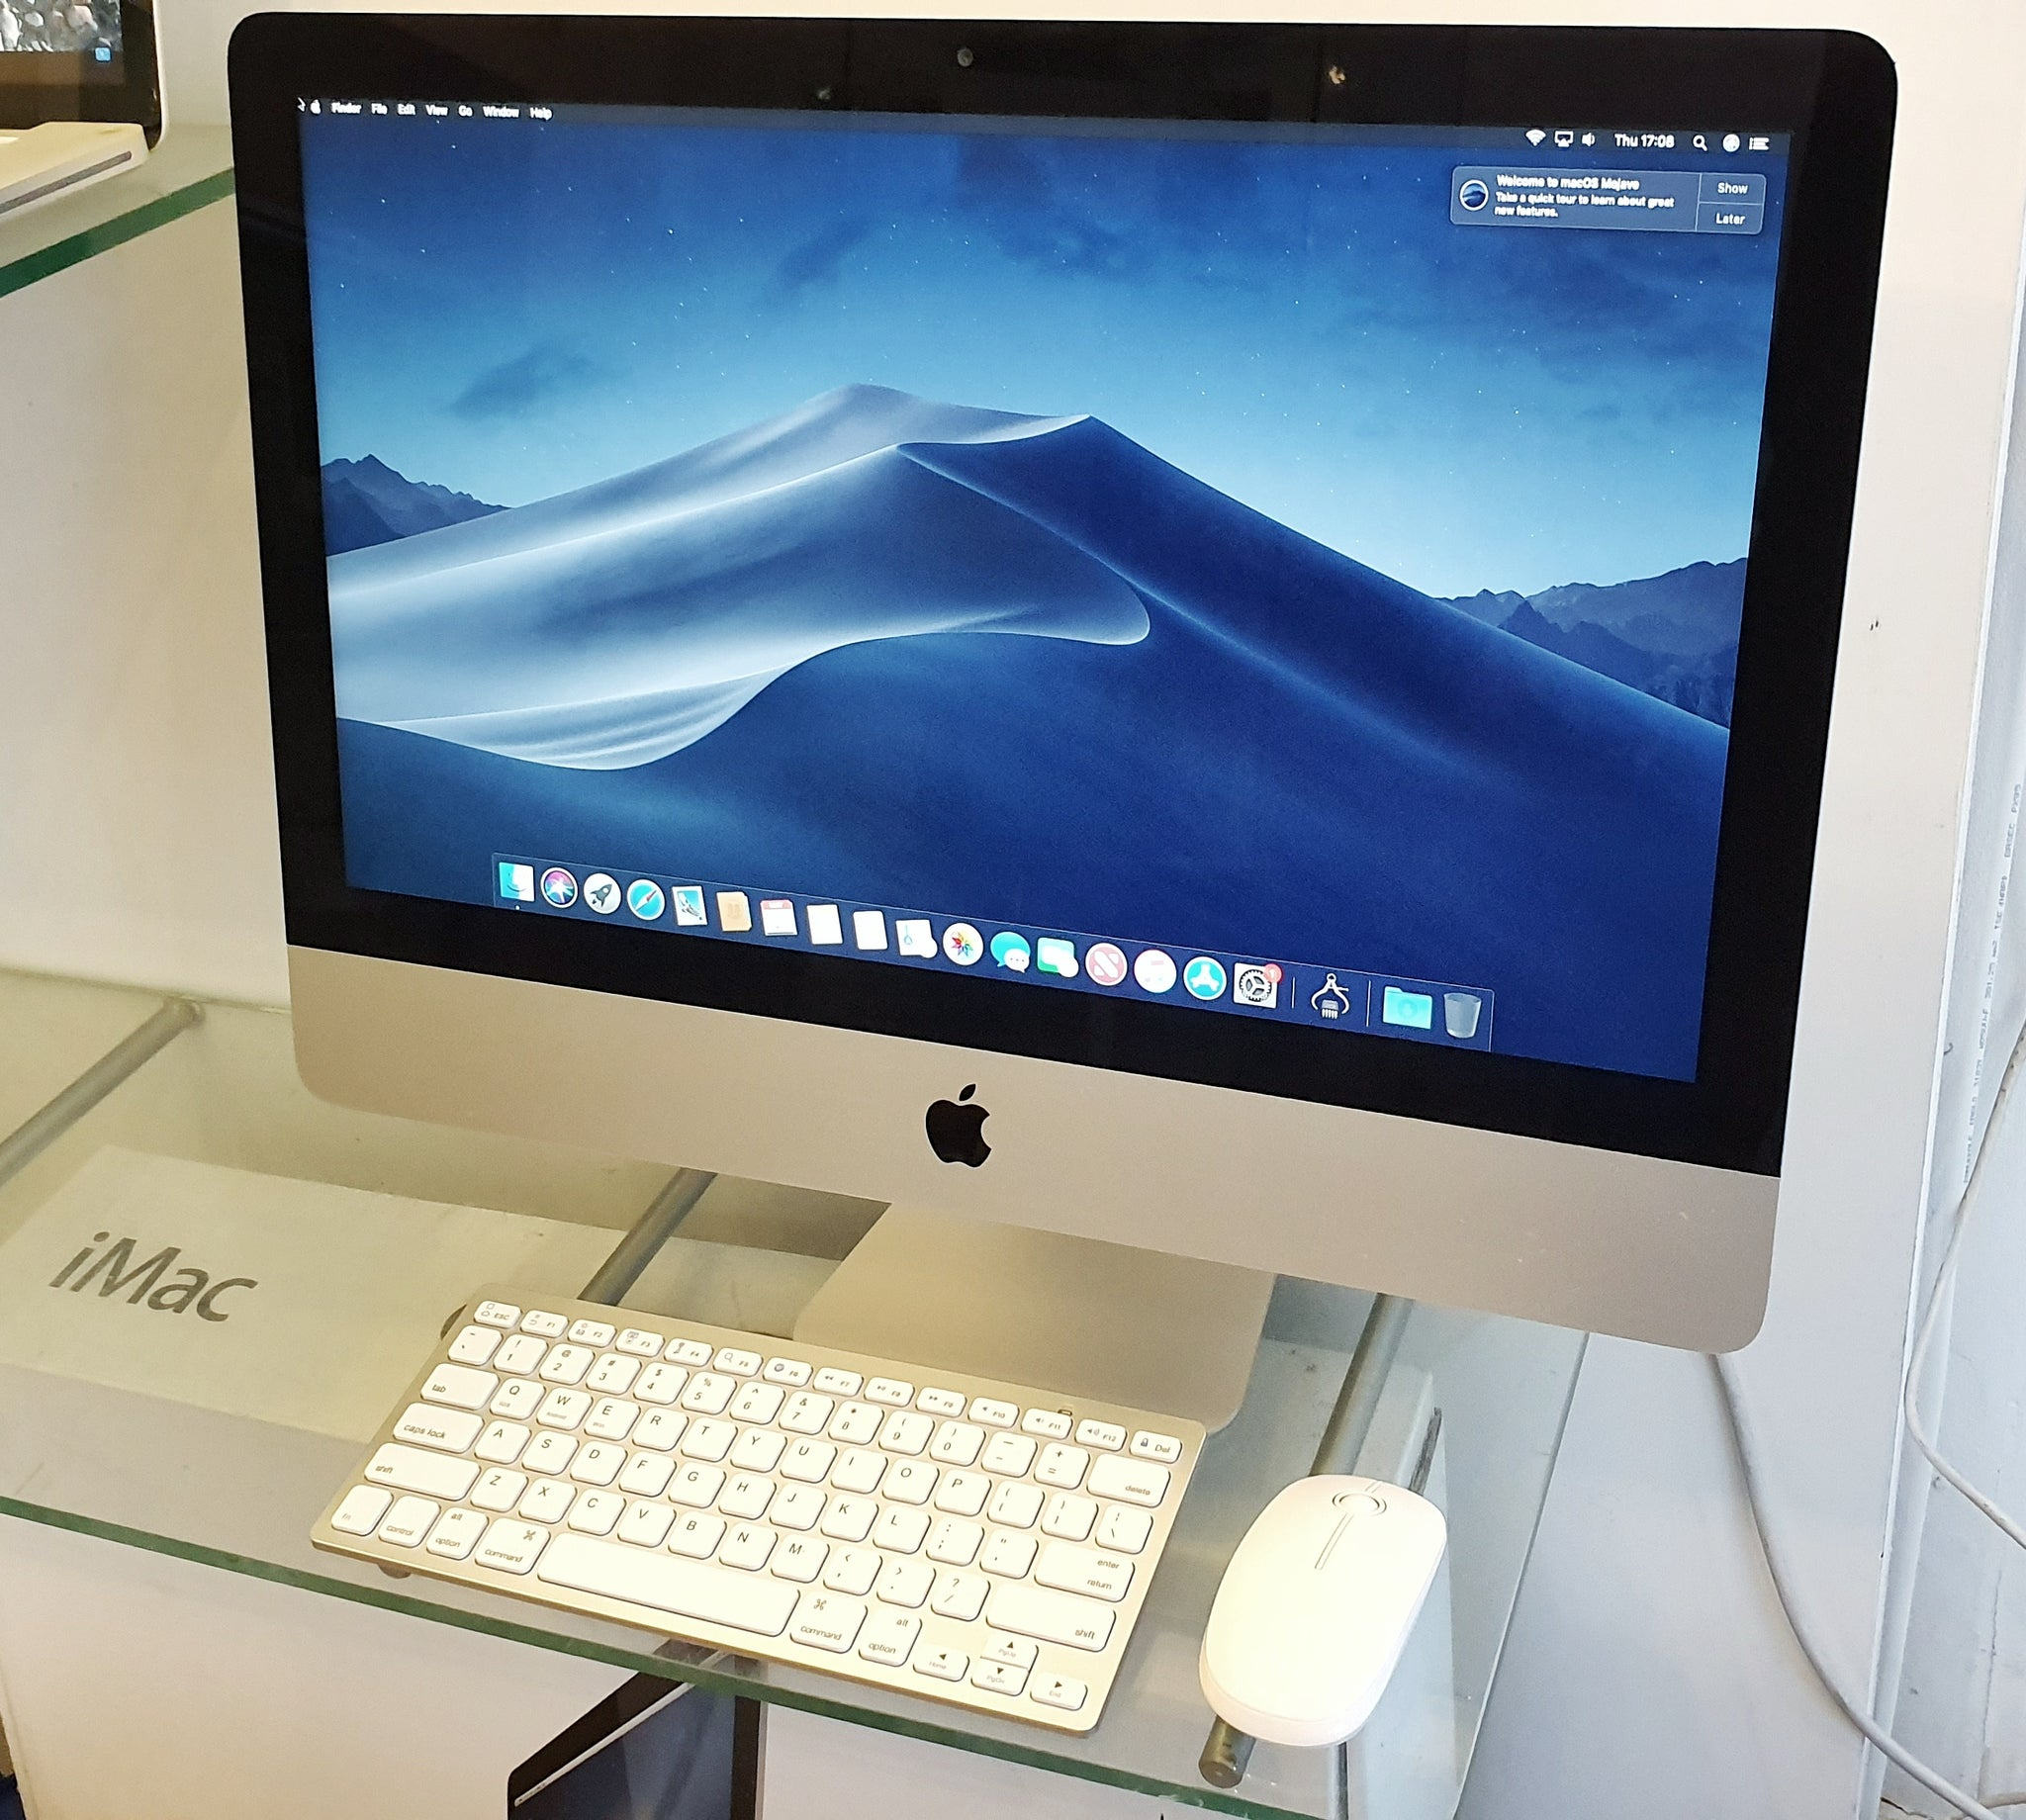 "Apple iMac Slim 21.5"" A1418 i5 16GB 500GB SSD #10881"